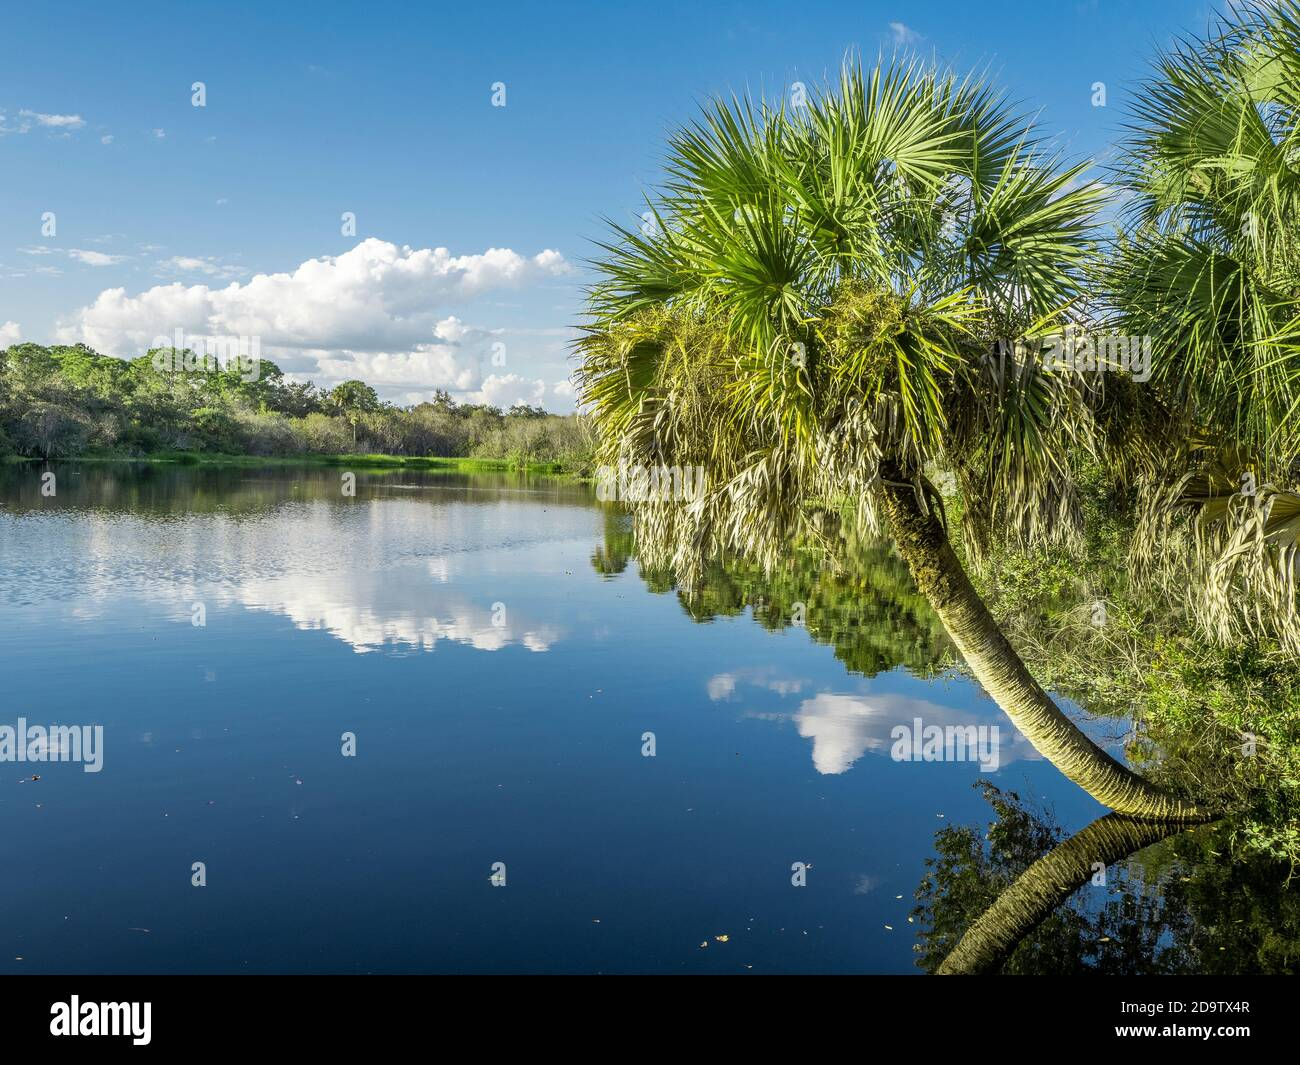 Deer Prairie Creek  in Deer Prairie Creek Preserve in Vemice Florida in the United States Stock Photo